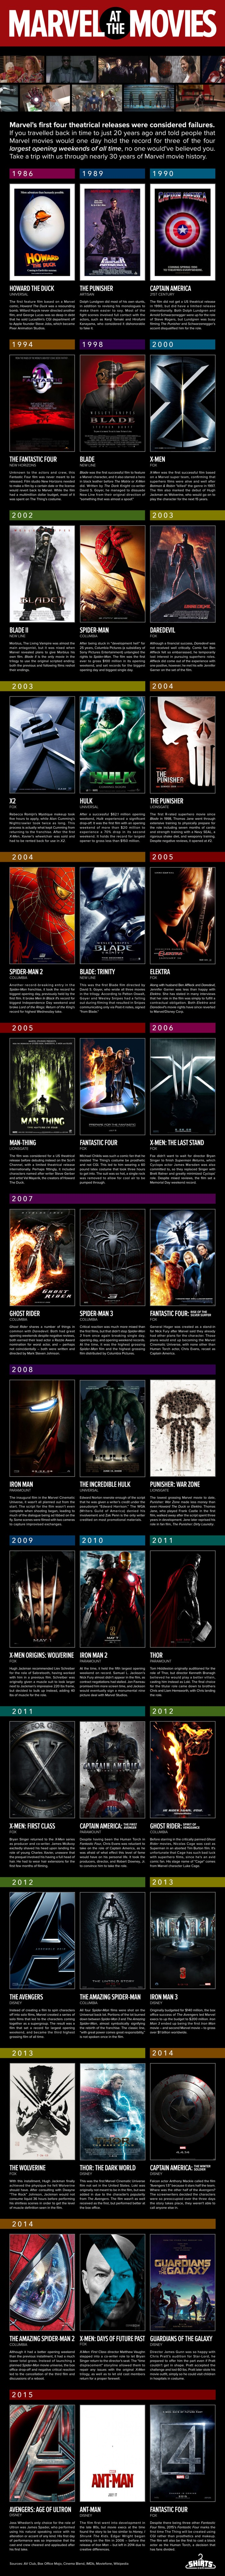 Marvel-Movies-Infographic